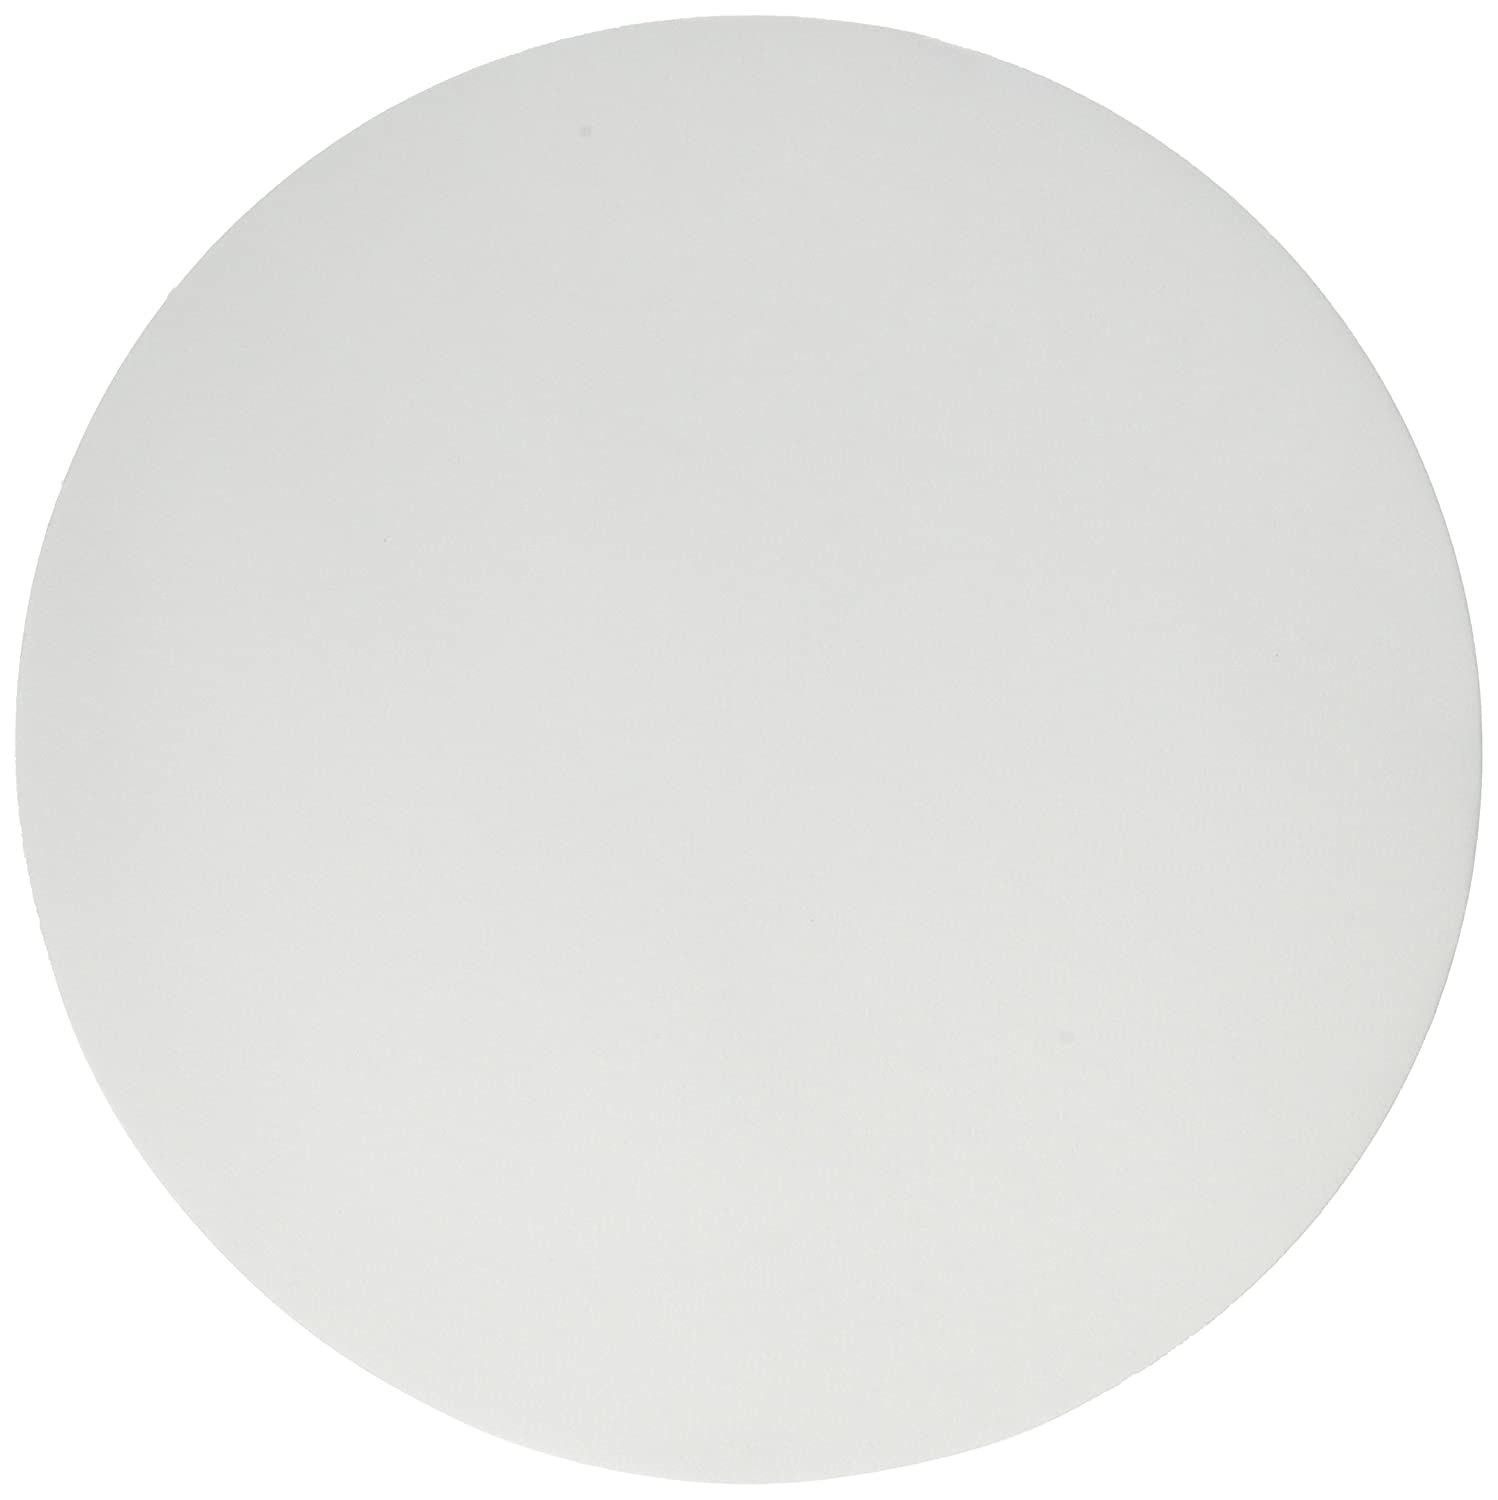 Whatman 4712N45PK 1004240 Grade 4 Qualitative Filter Paper, 240 mm Thick and Max Volume 1621 ml/m (Pack of 100) GE Healthcare